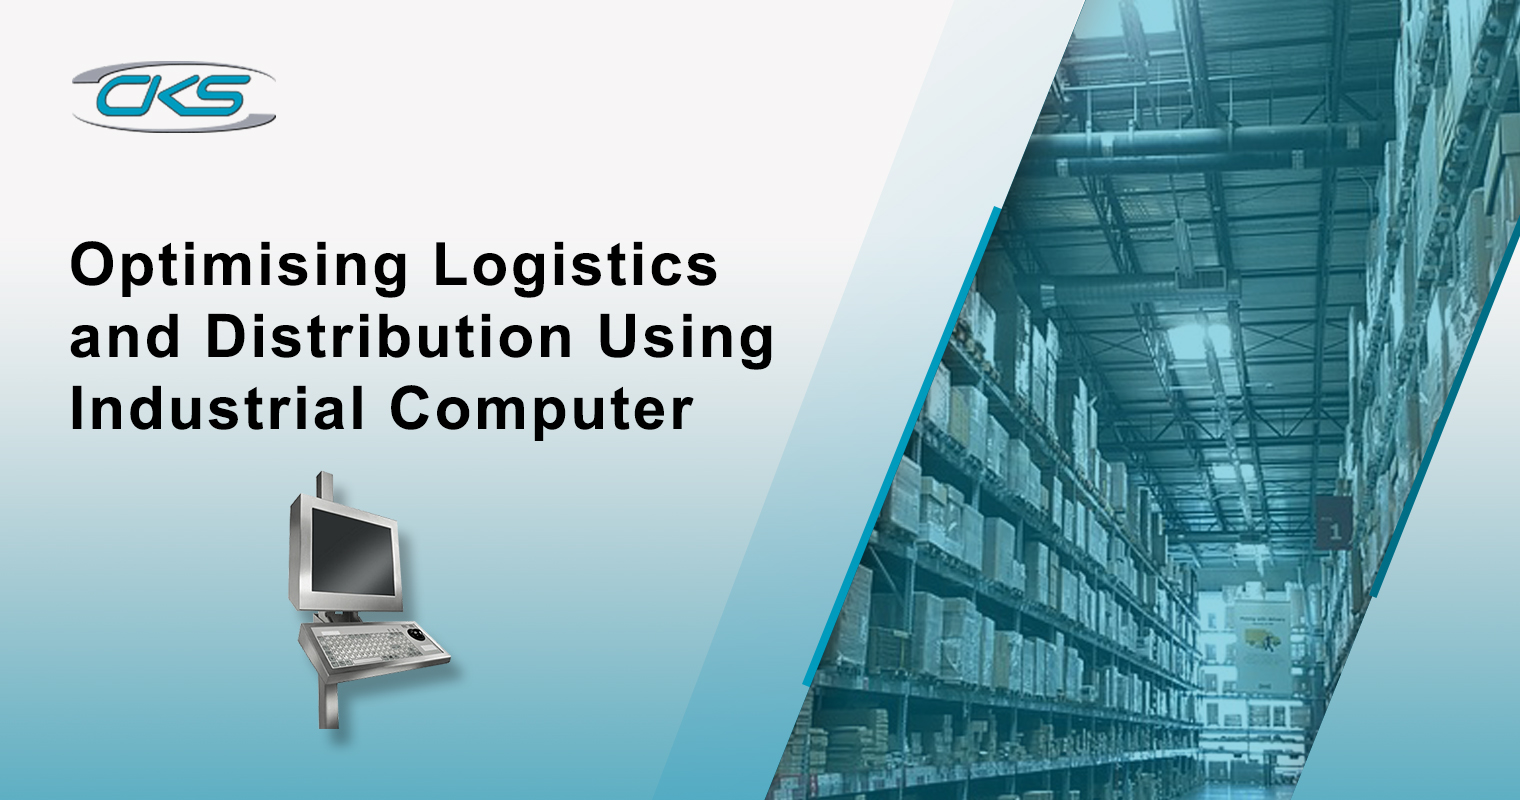 Optimising Logistics and Distribution Using Industrial Computer